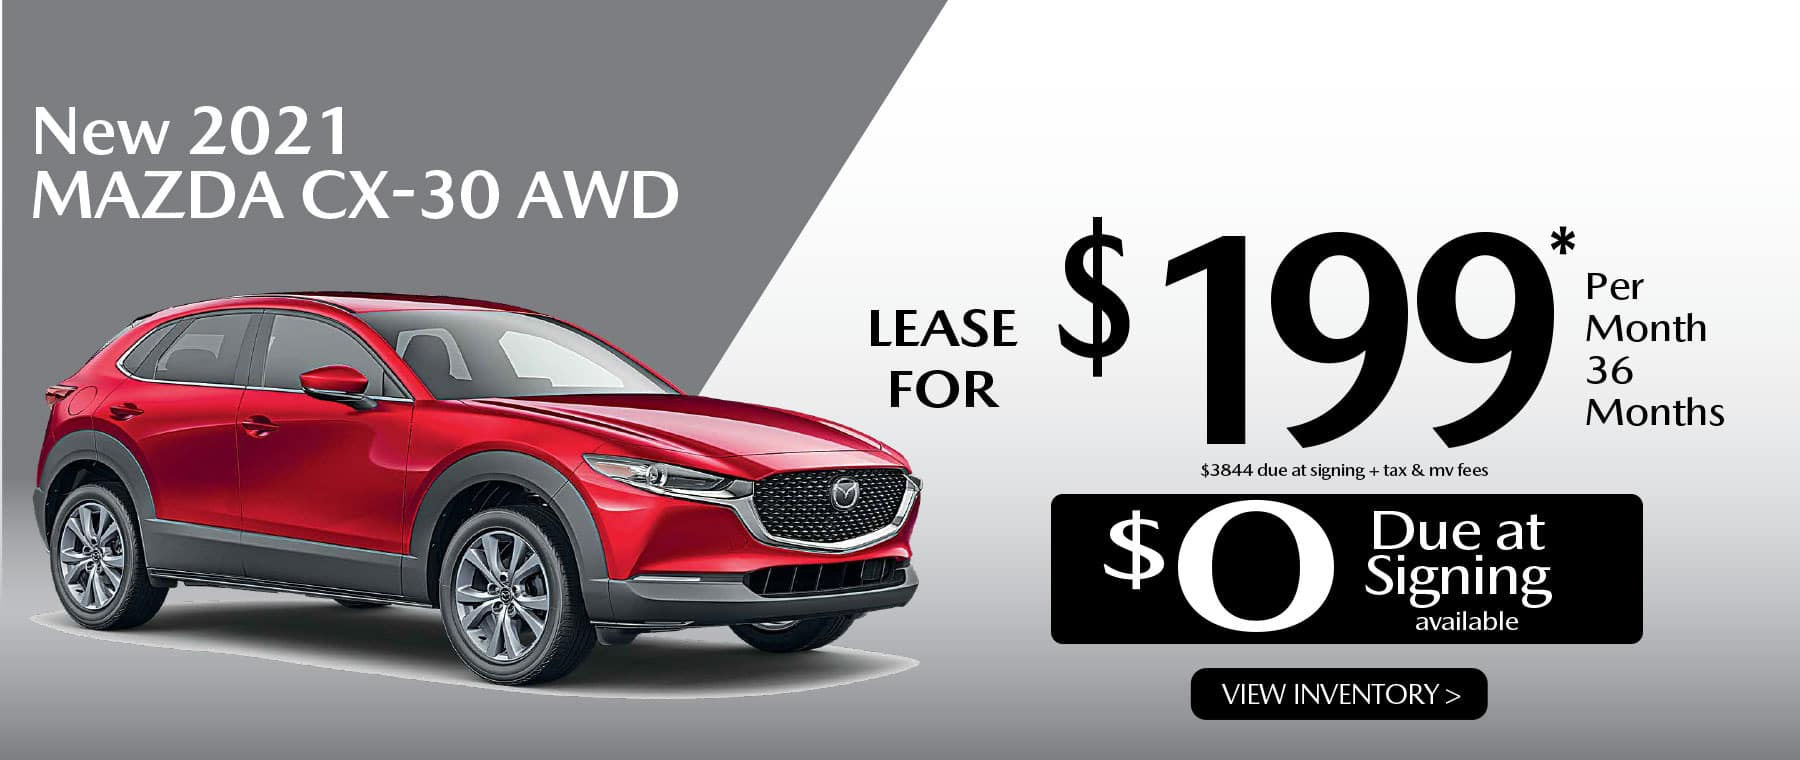 03 CX-30 hi New Lease Special Offer Garden City Mazda NY